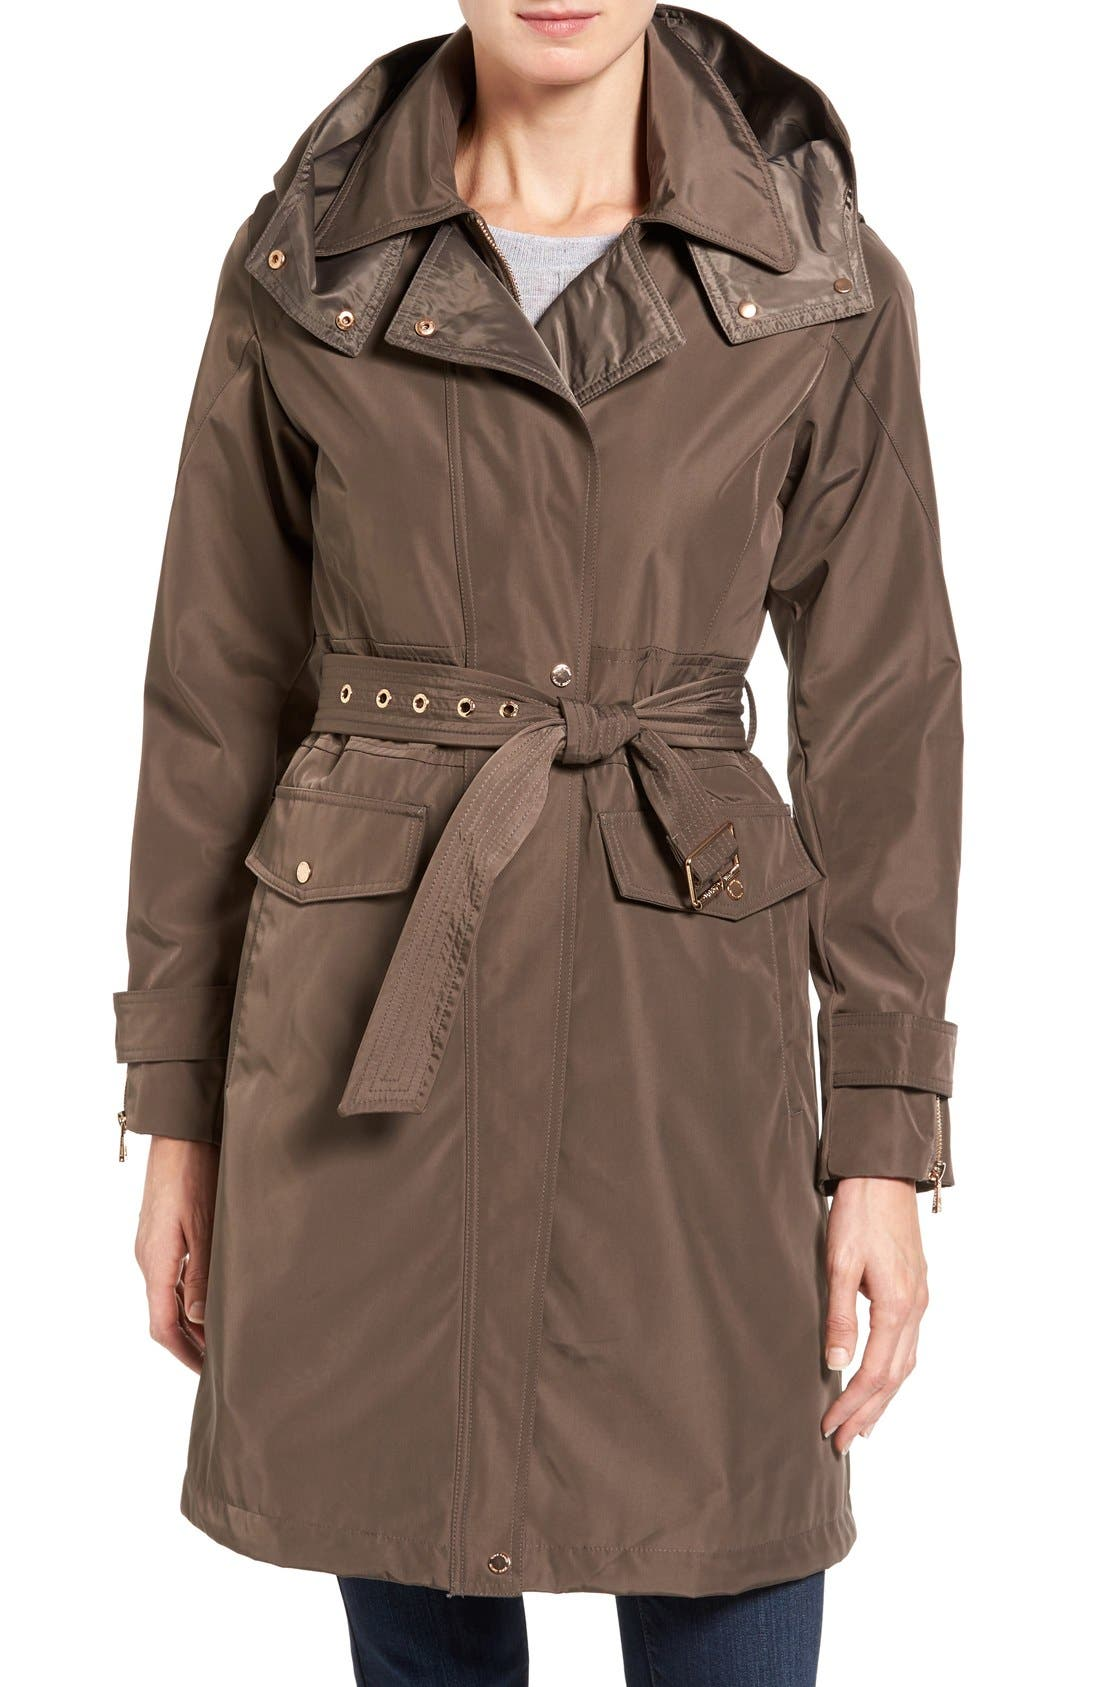 Alternate Image 1 Selected - Vince Camuto Hooded Trench Coat